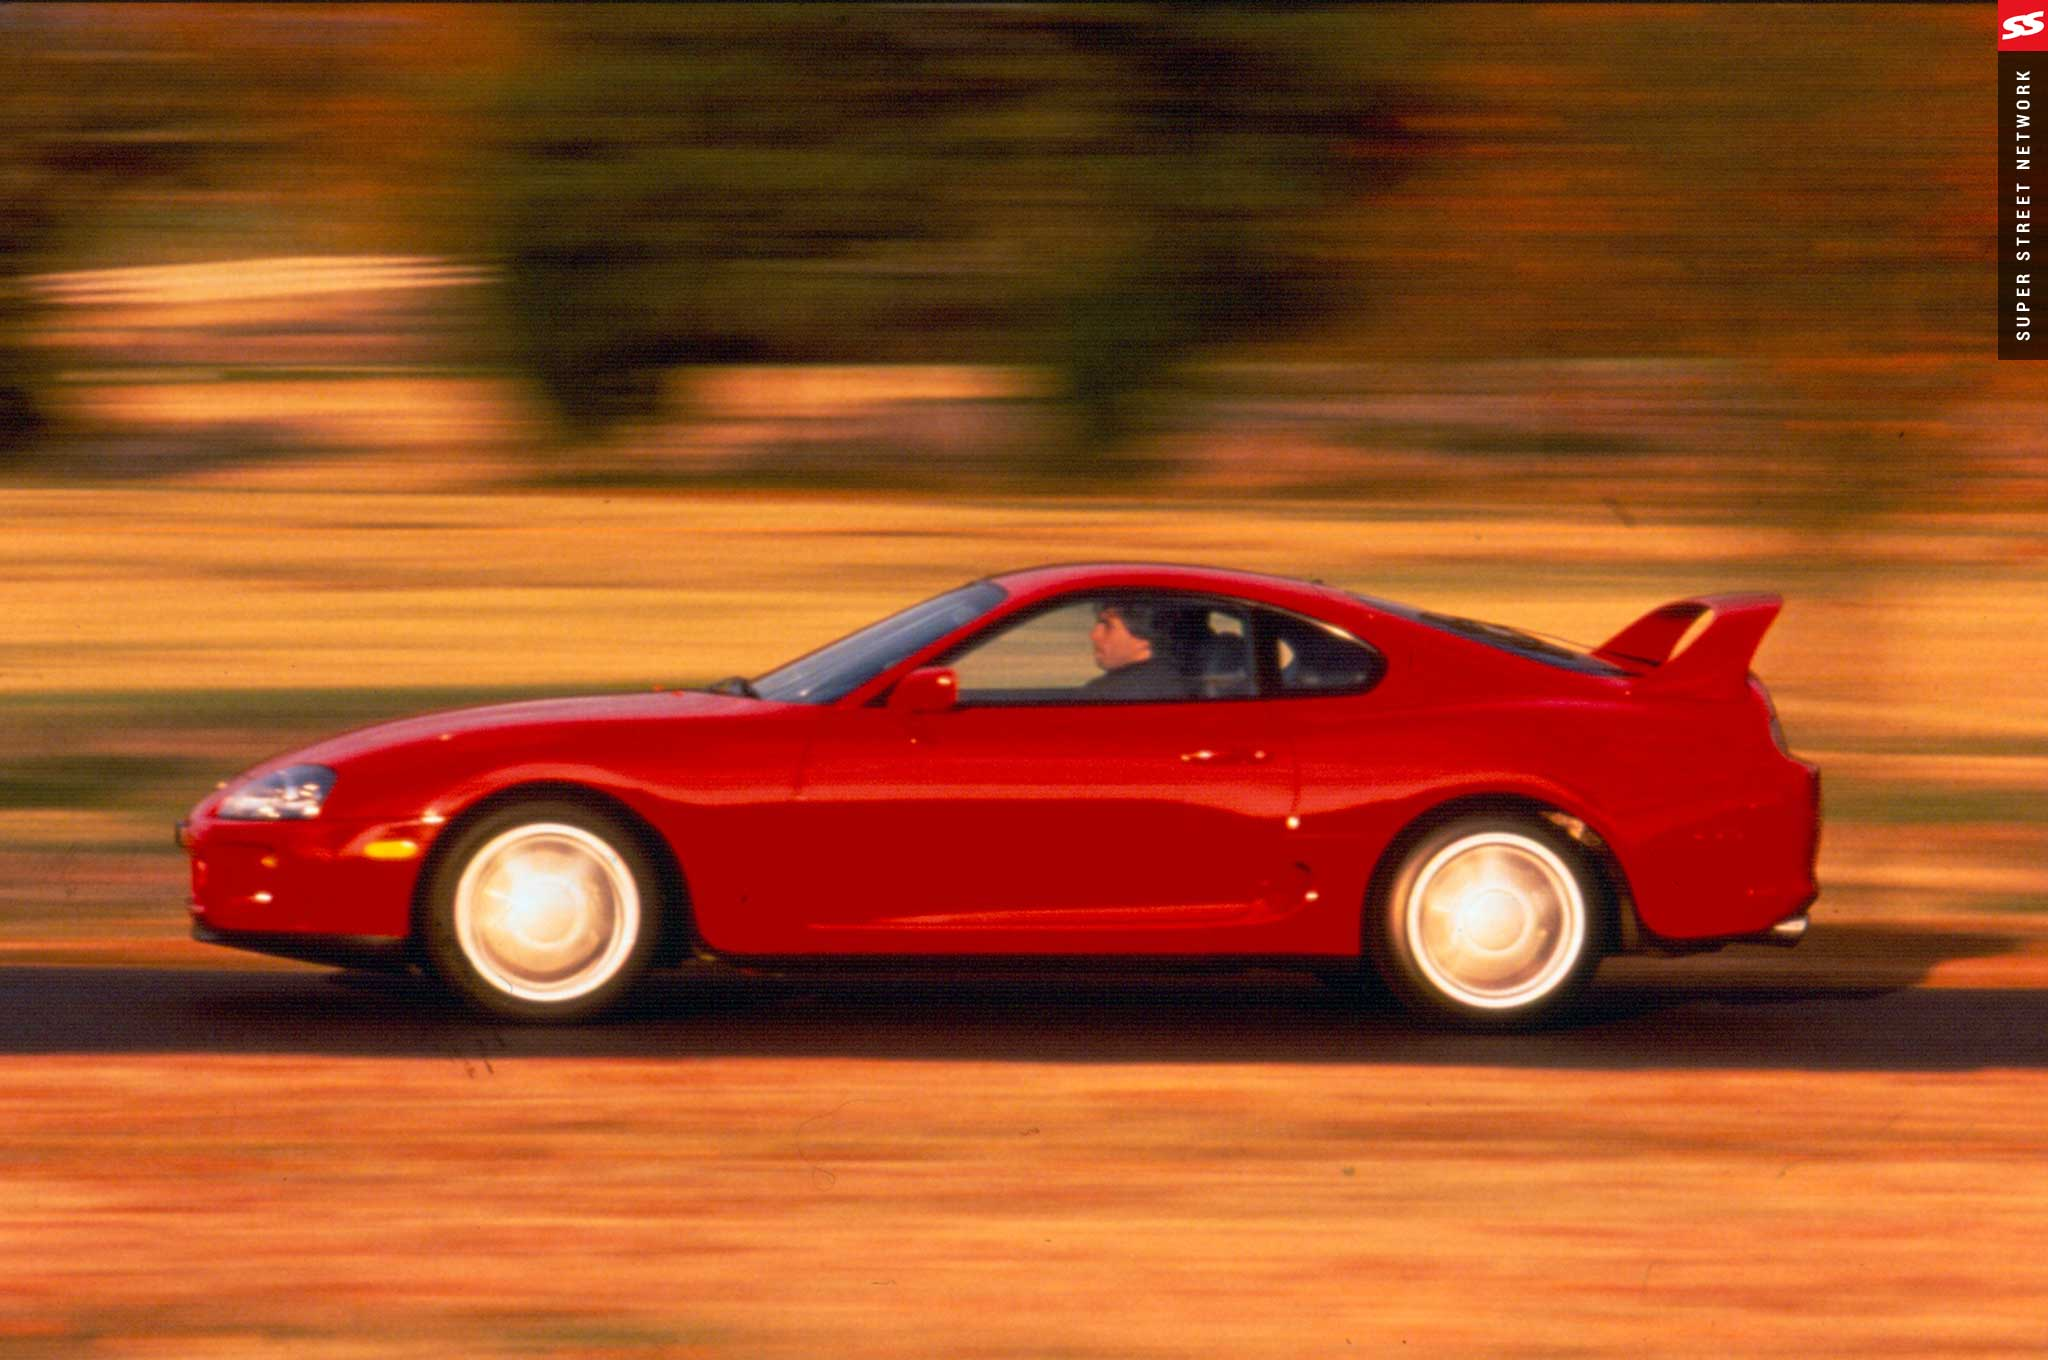 Facts And History About The Toyota Supra Mark Iv Supra5